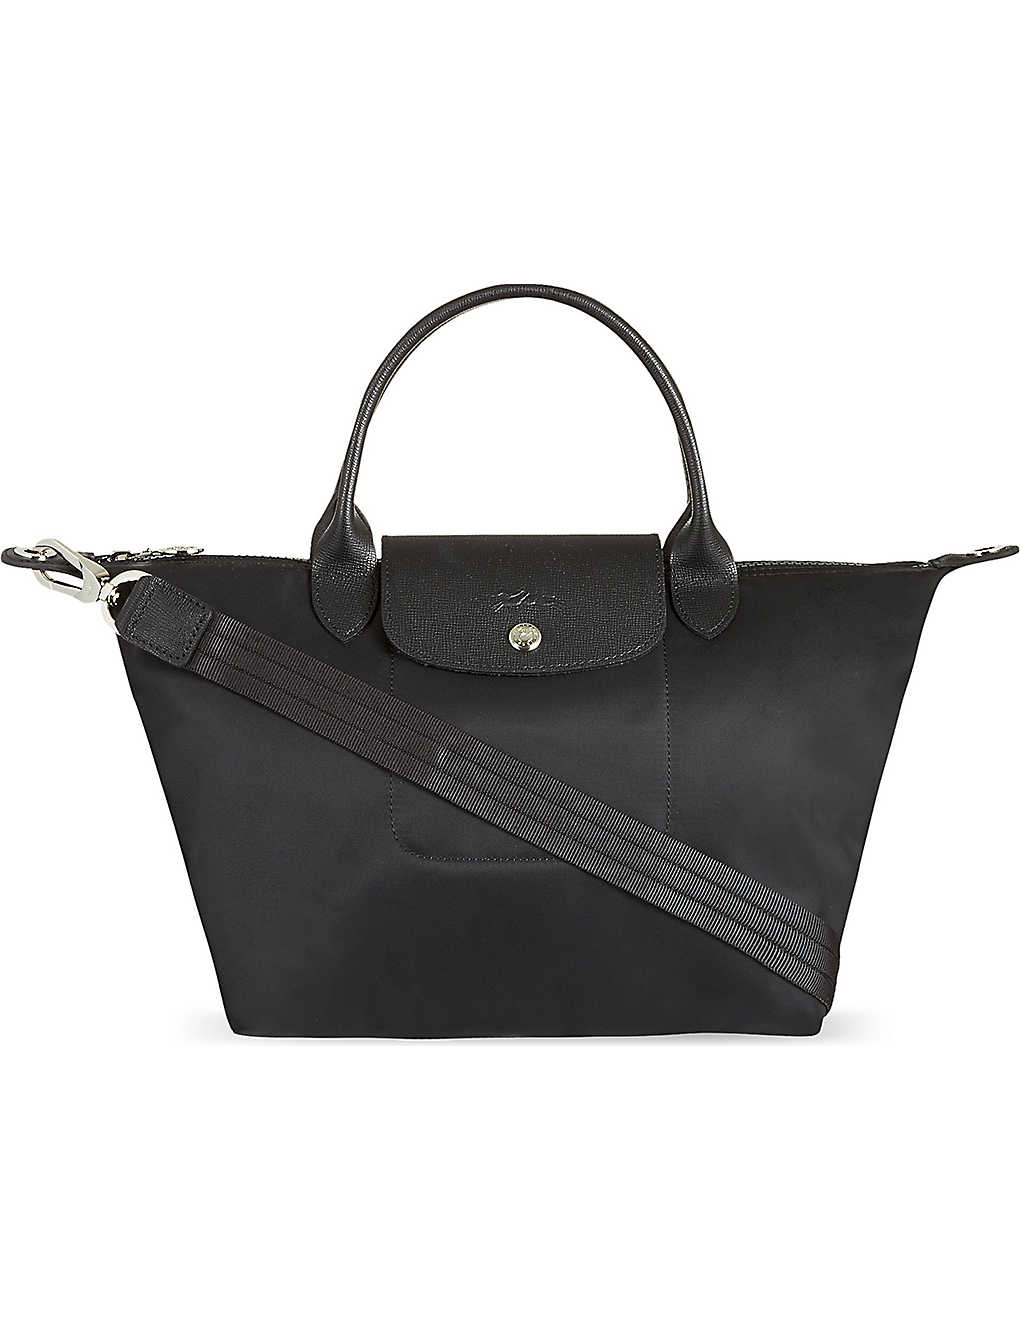 e29da641f917 LONGCHAMP - Le Pliage Neo medium shopper